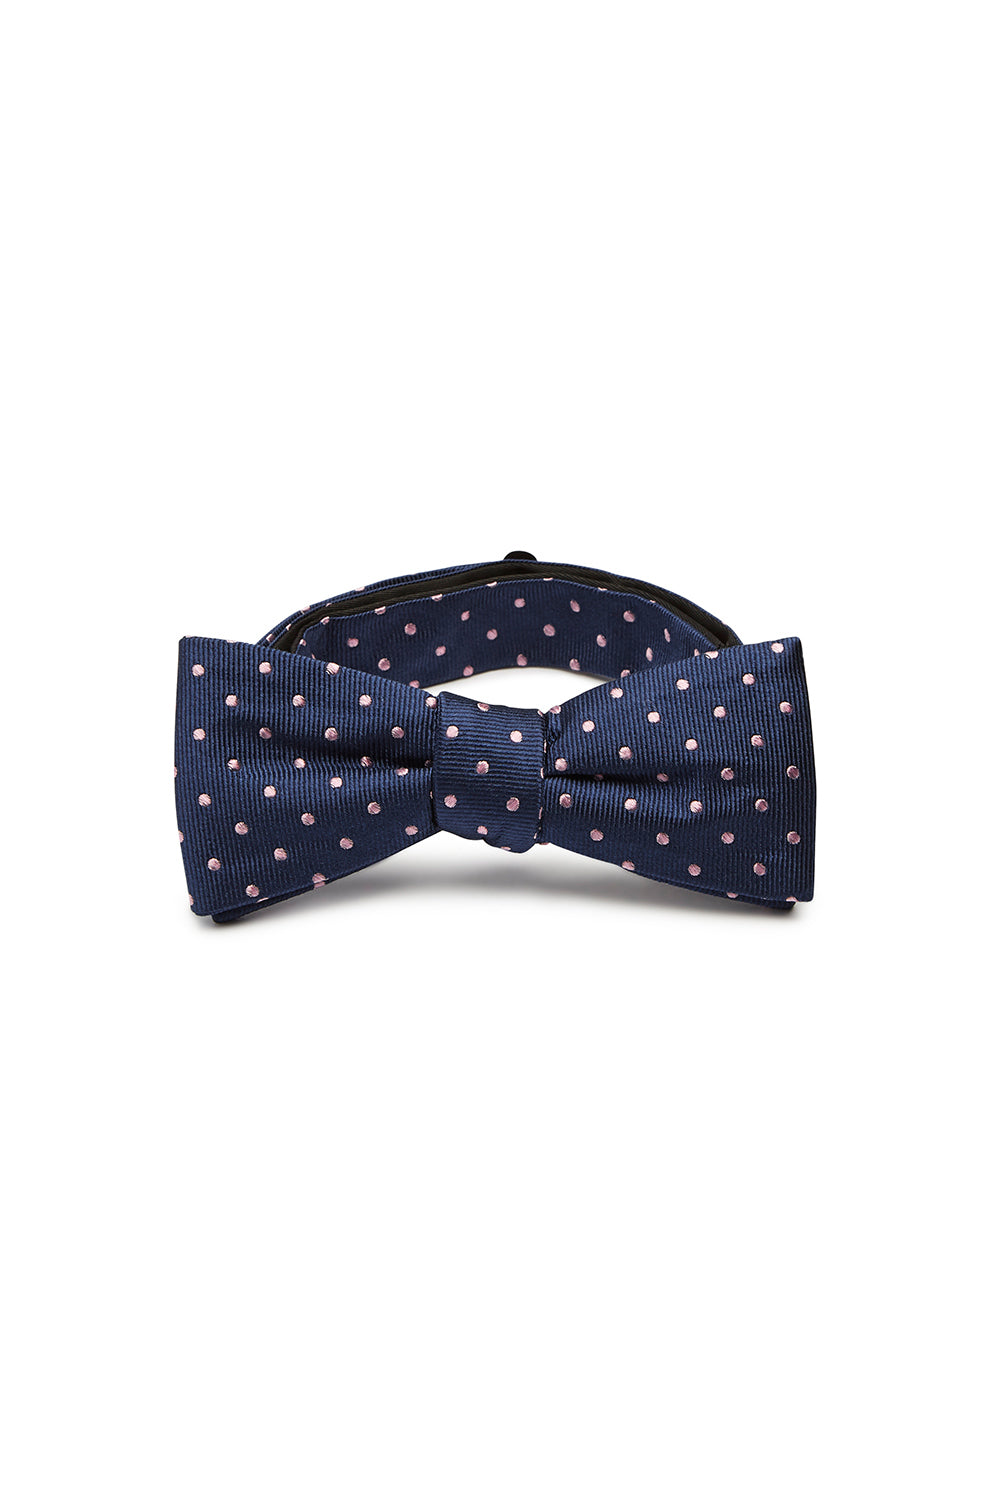 The Riley Ulster Bow Tie Red-White-Blue